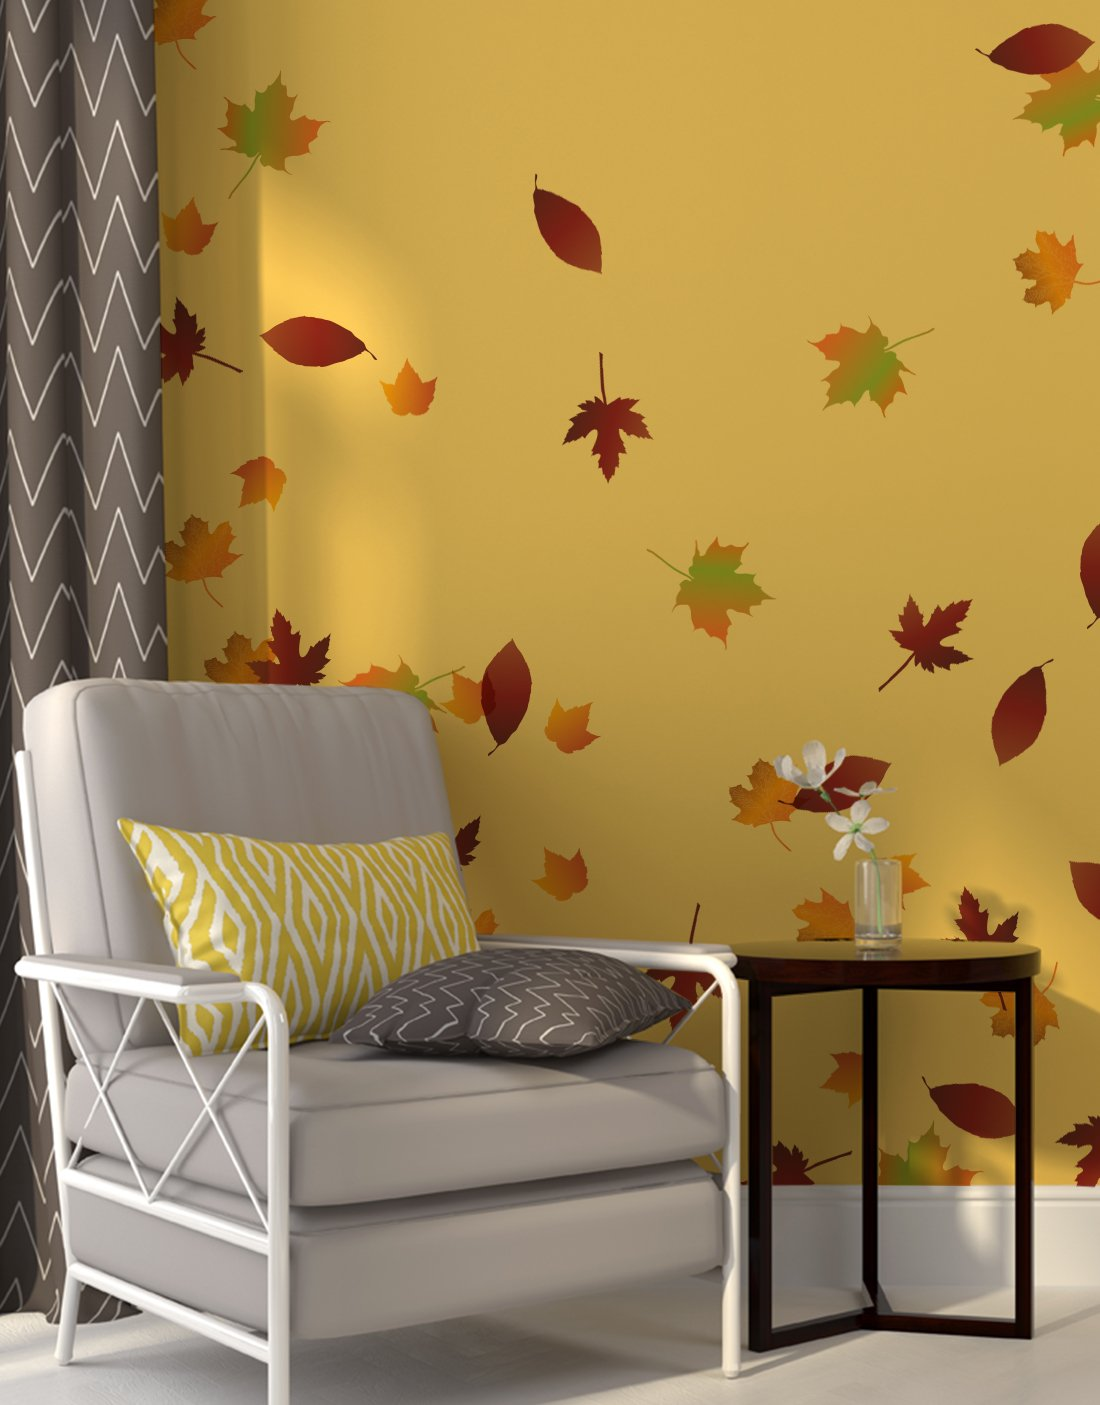 Amazon.com: Autumn Leaves Falling Wall Decal Stickers - Fall Colors ...